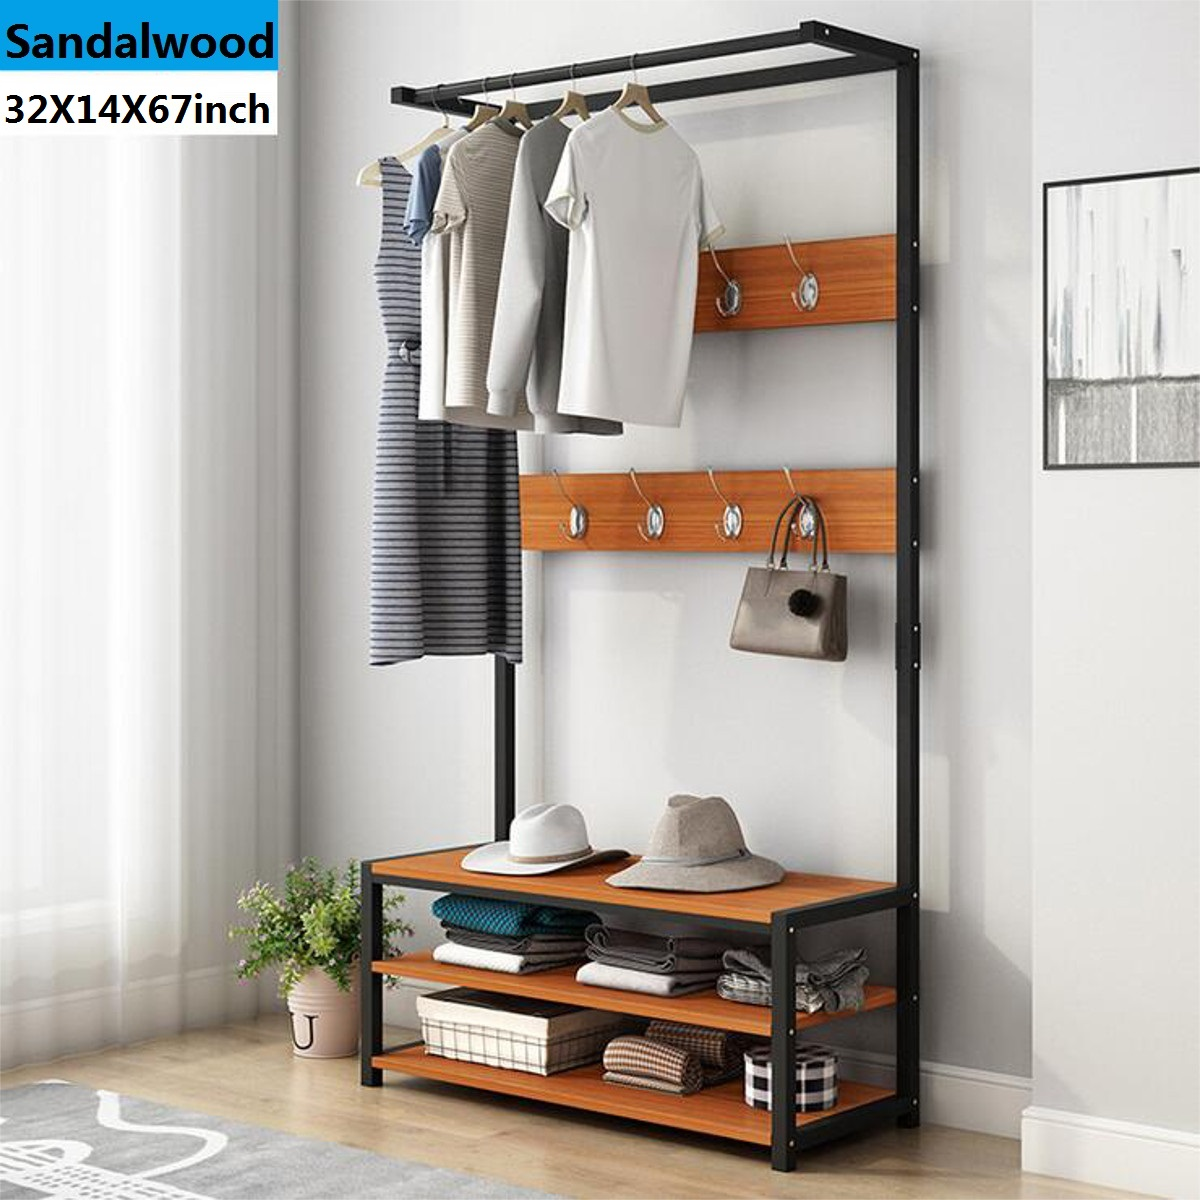 32inchx67inch industrial coat rack shoe bench hall tree entryway storage shelf wood look accent furniture with metal frame 3 in 1 design easy